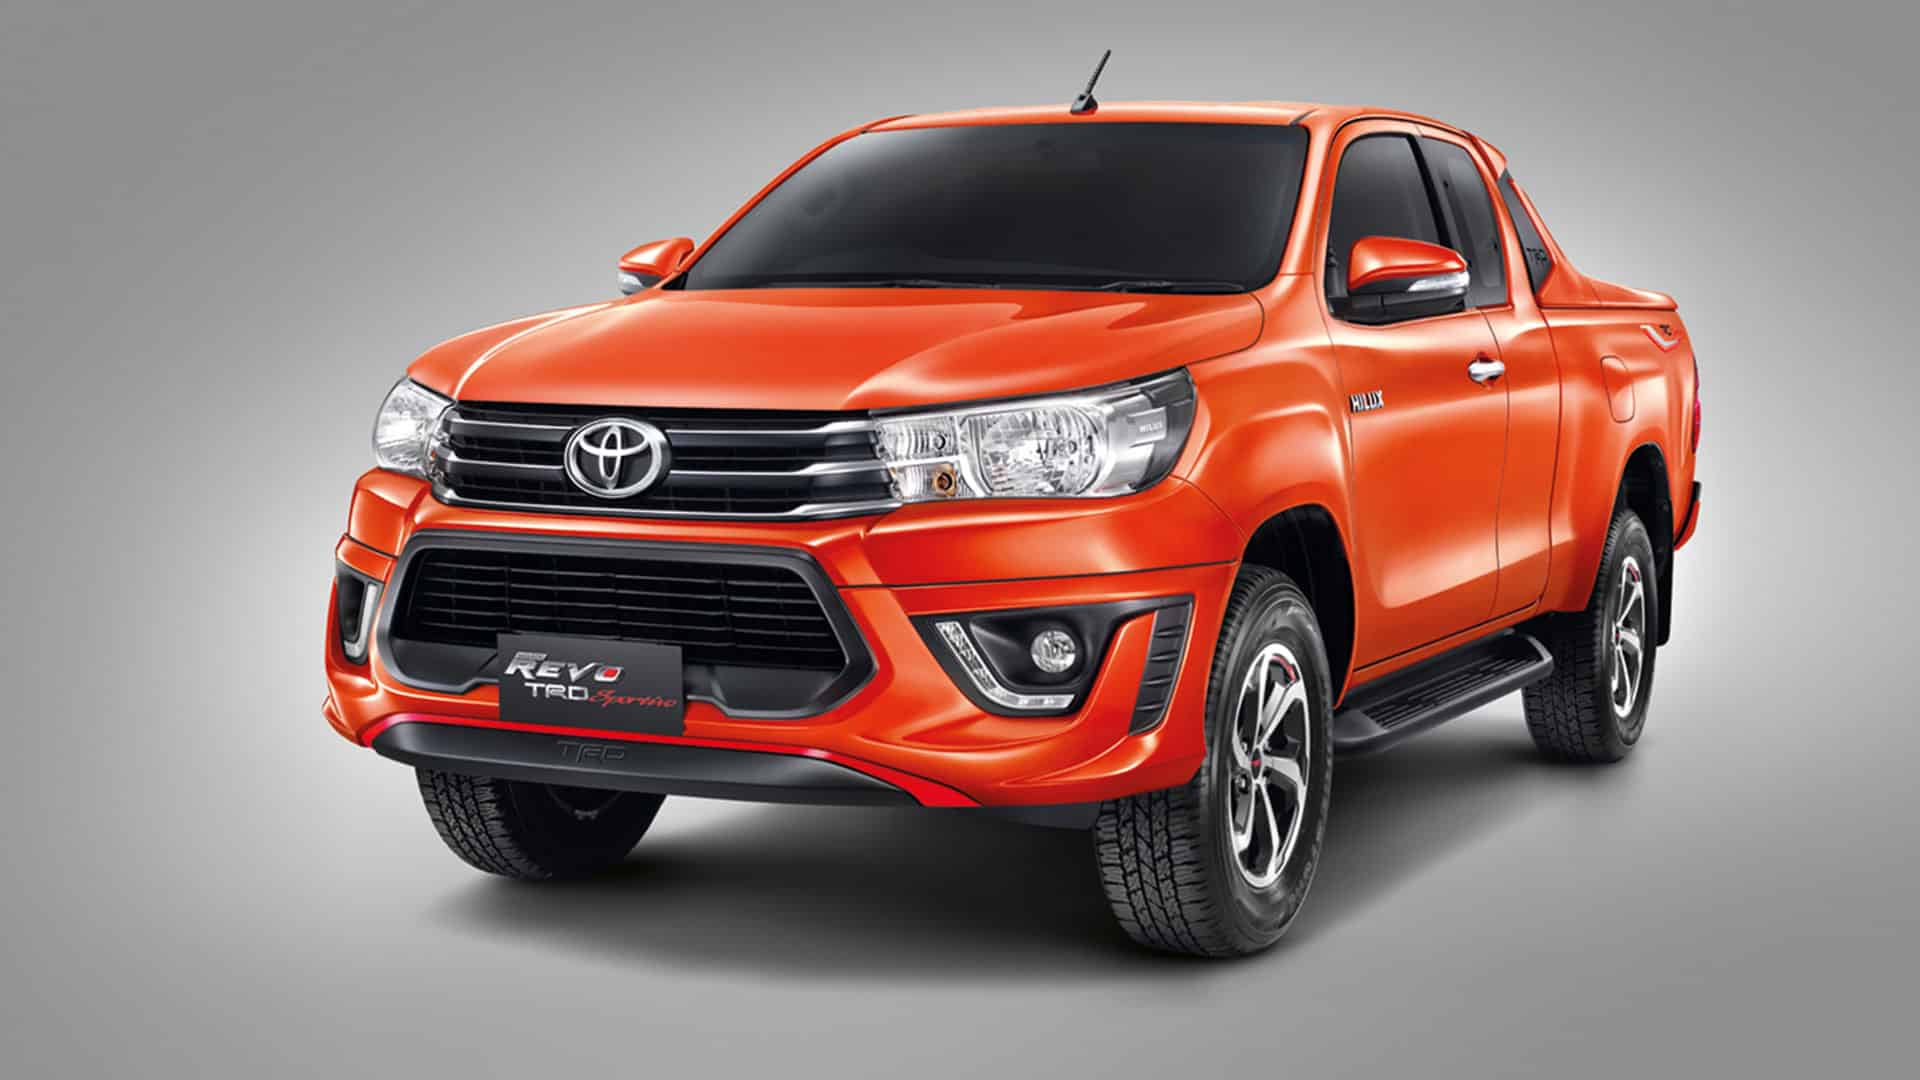 2019 2020 Toyota Hilux Revo Smart Cab Trd Sportivo Exporter Export Toyota Hilux Revo Export 2019 2020 2021 Rocco Diesel Double Smart Single Cab 4x4 For Sale